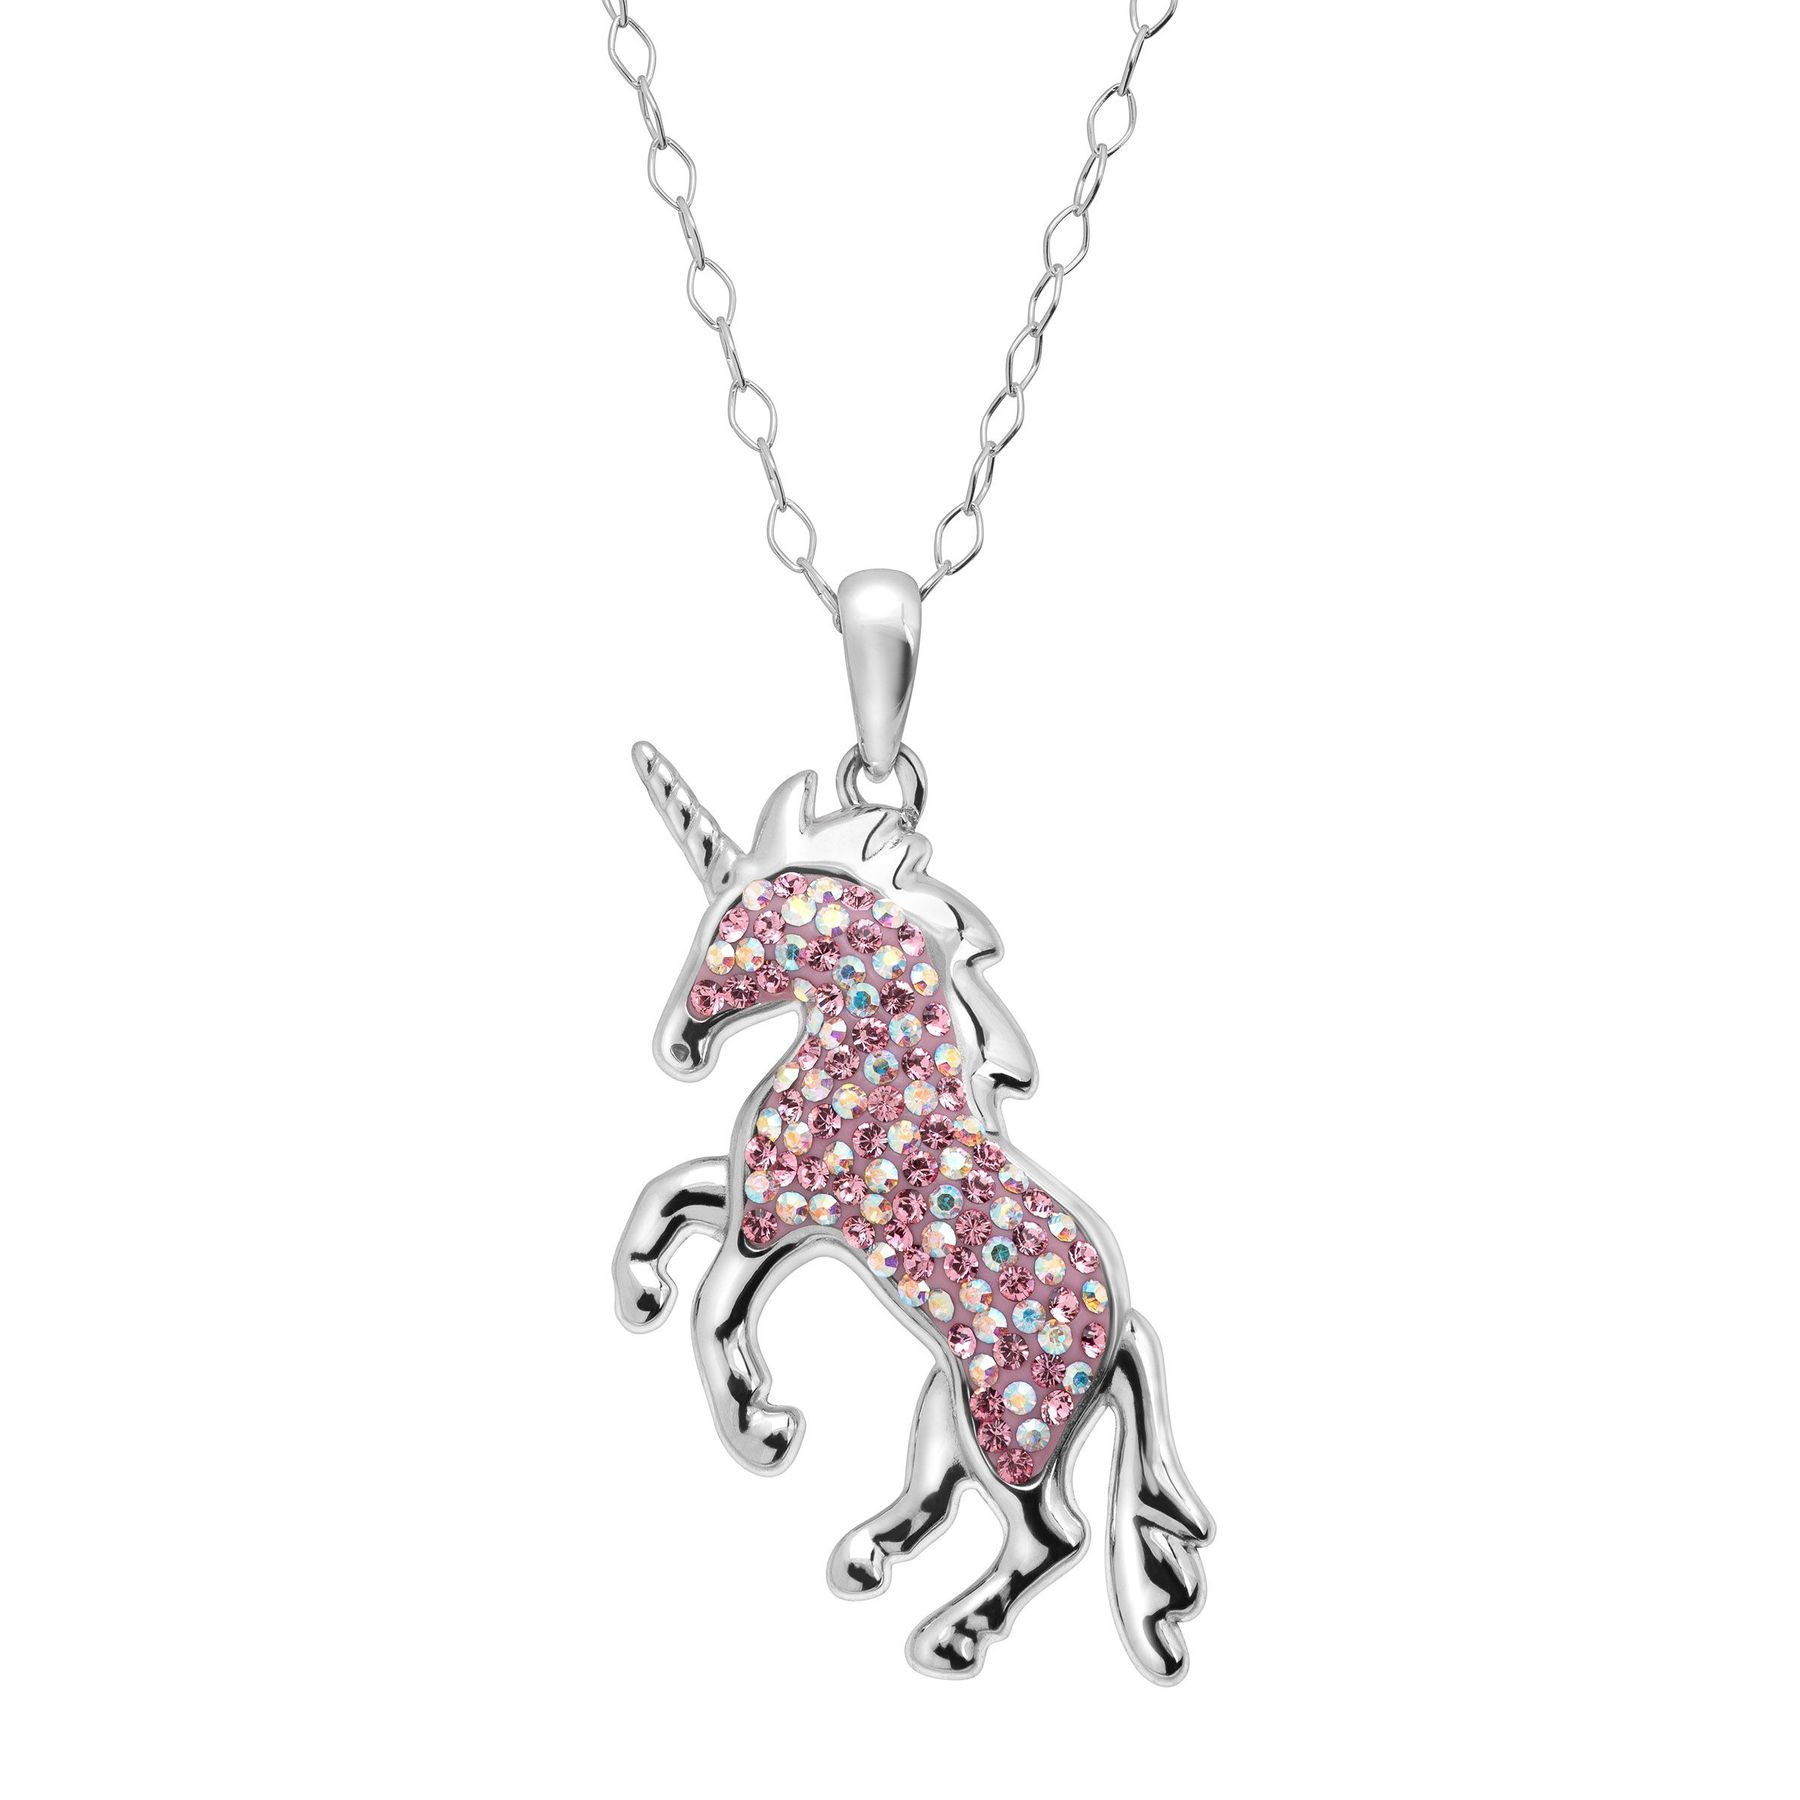 unicorn cloisonne necklace pendant pin pendants